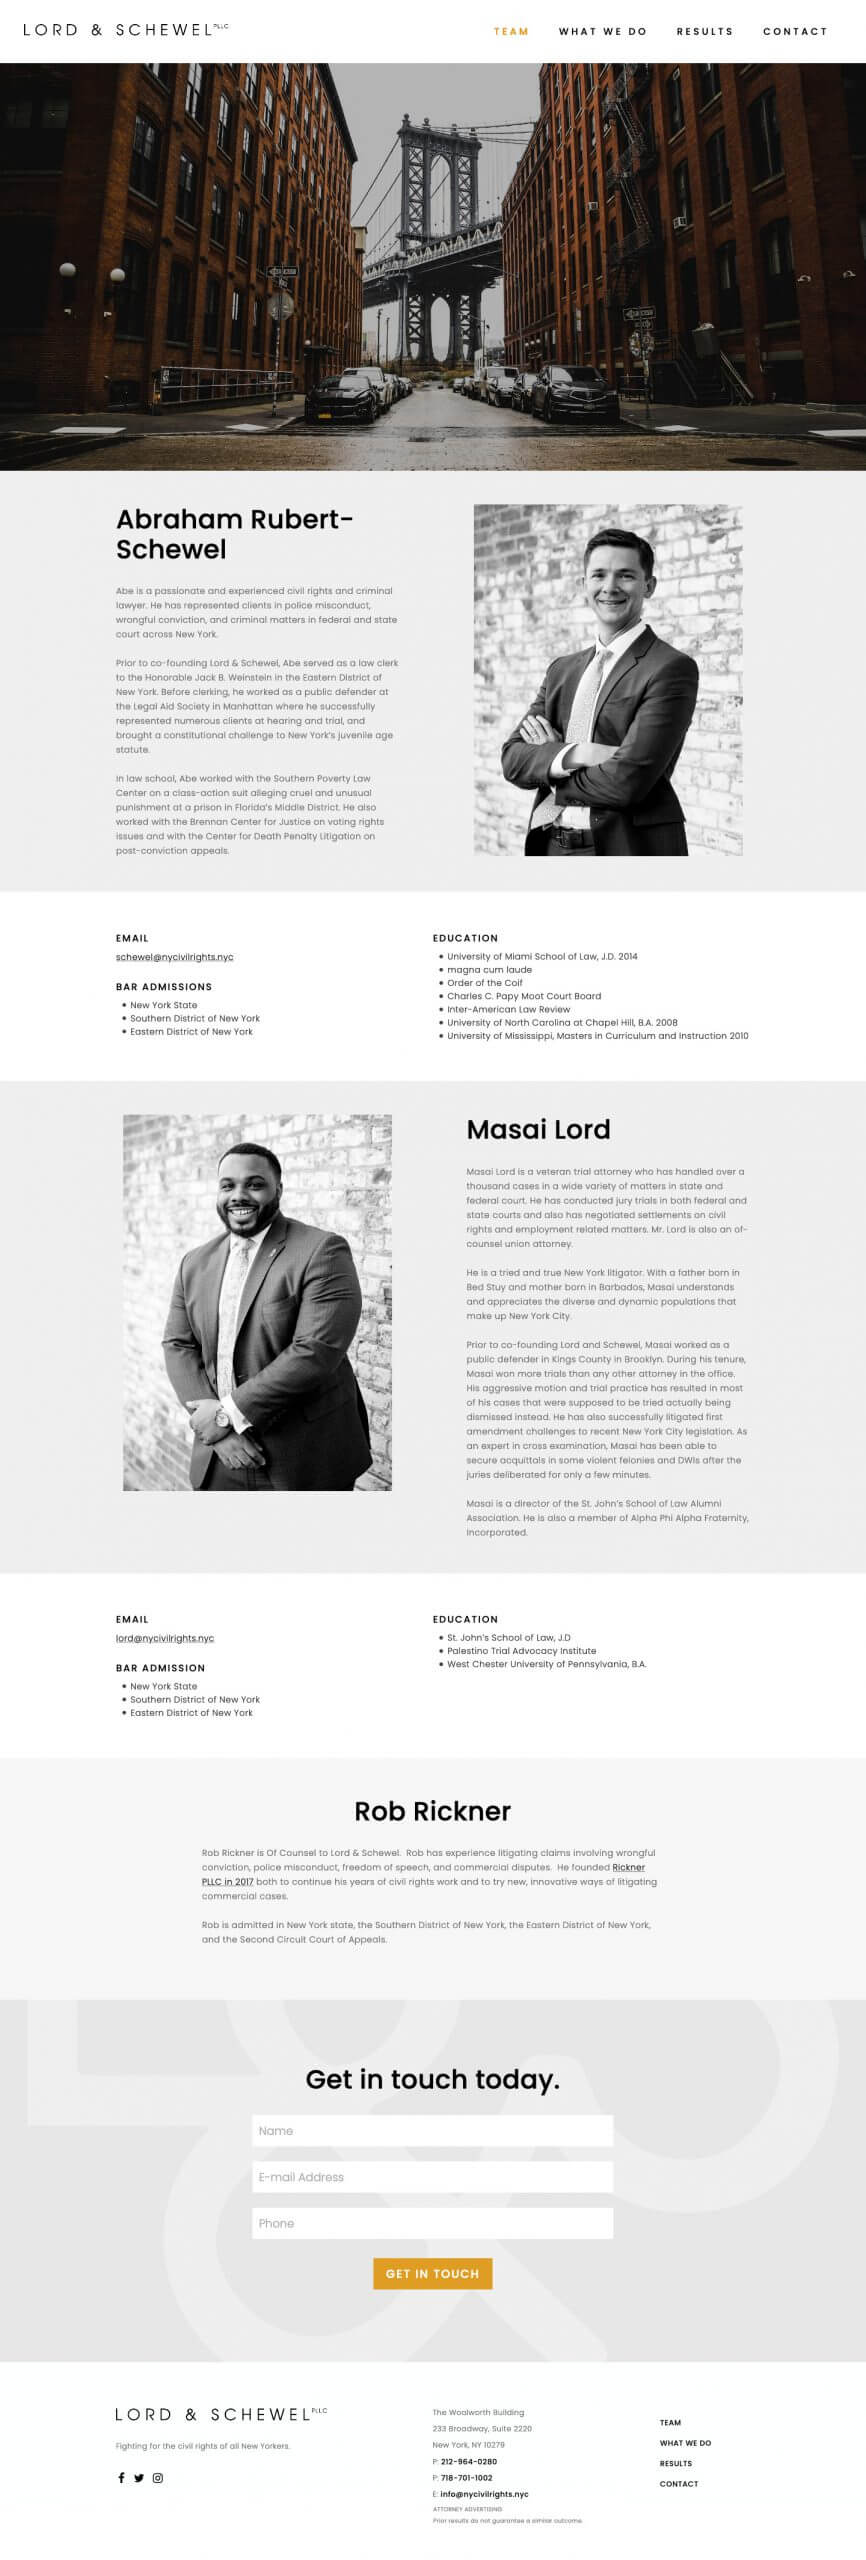 lord schewel tablet brooklyn web design bushwick design